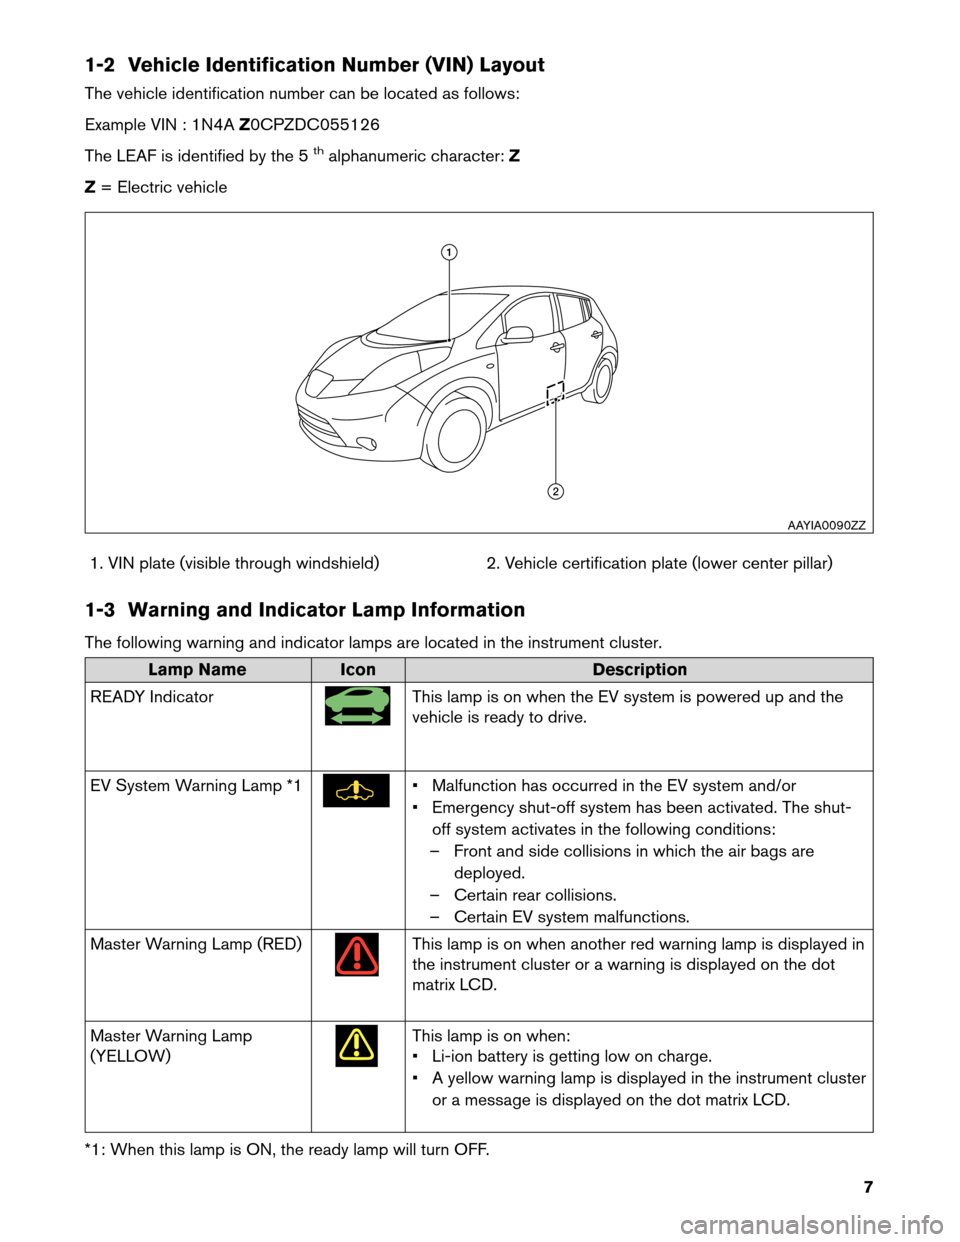 NISSAN LEAF 2013 1.G First Responders Guide, Page 7